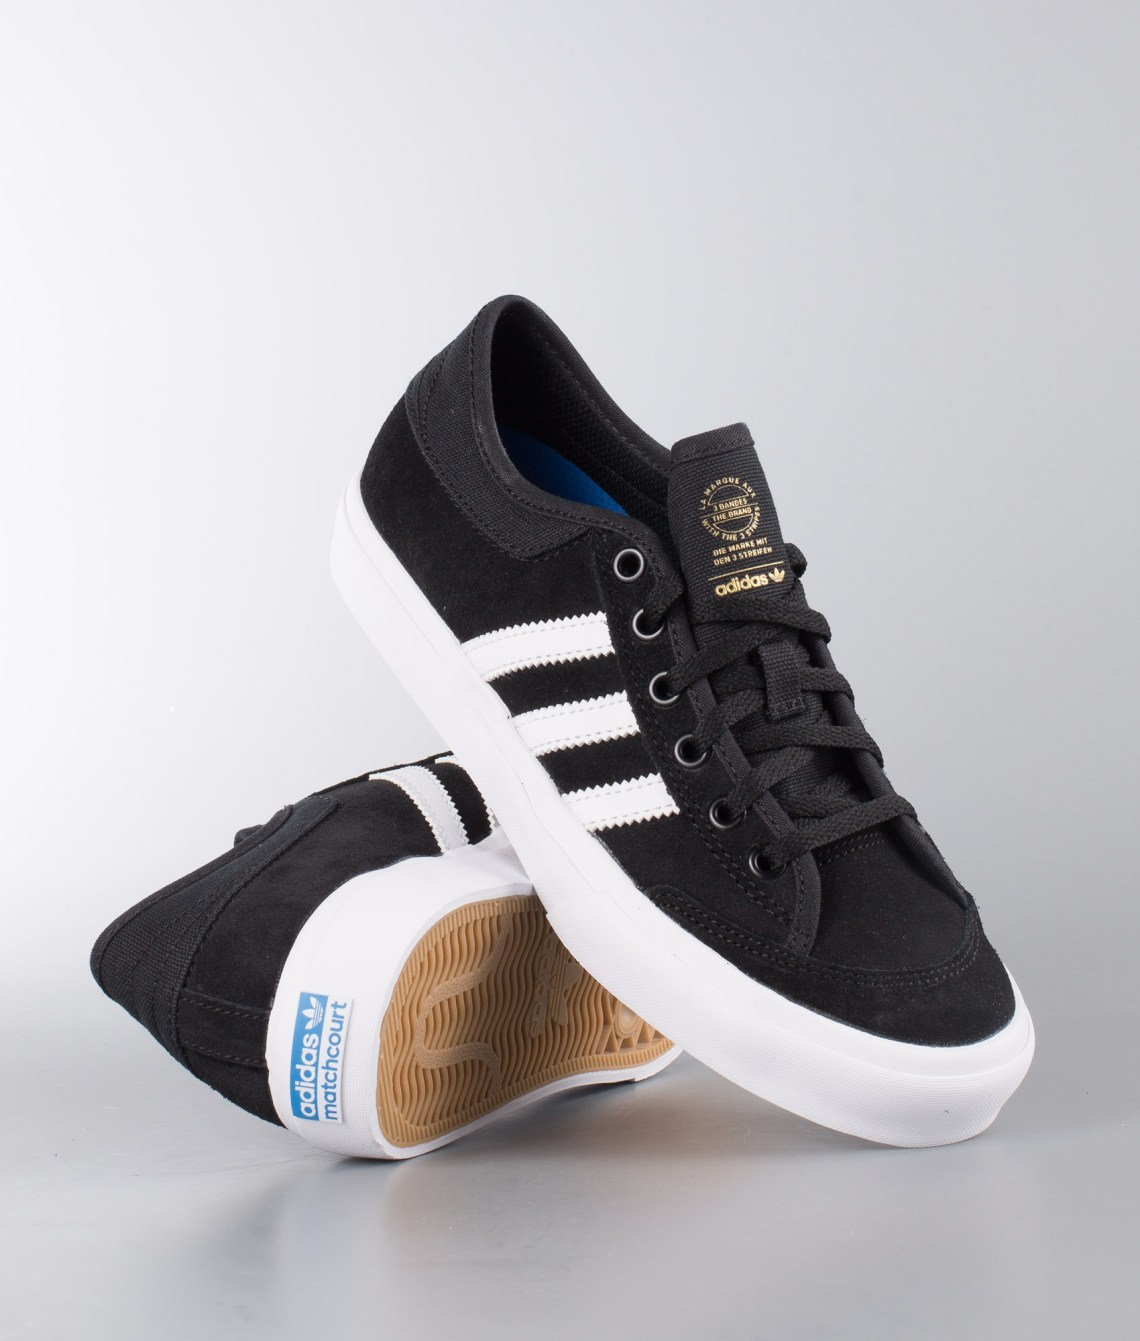 Adidas Skateboarding Shoes 5